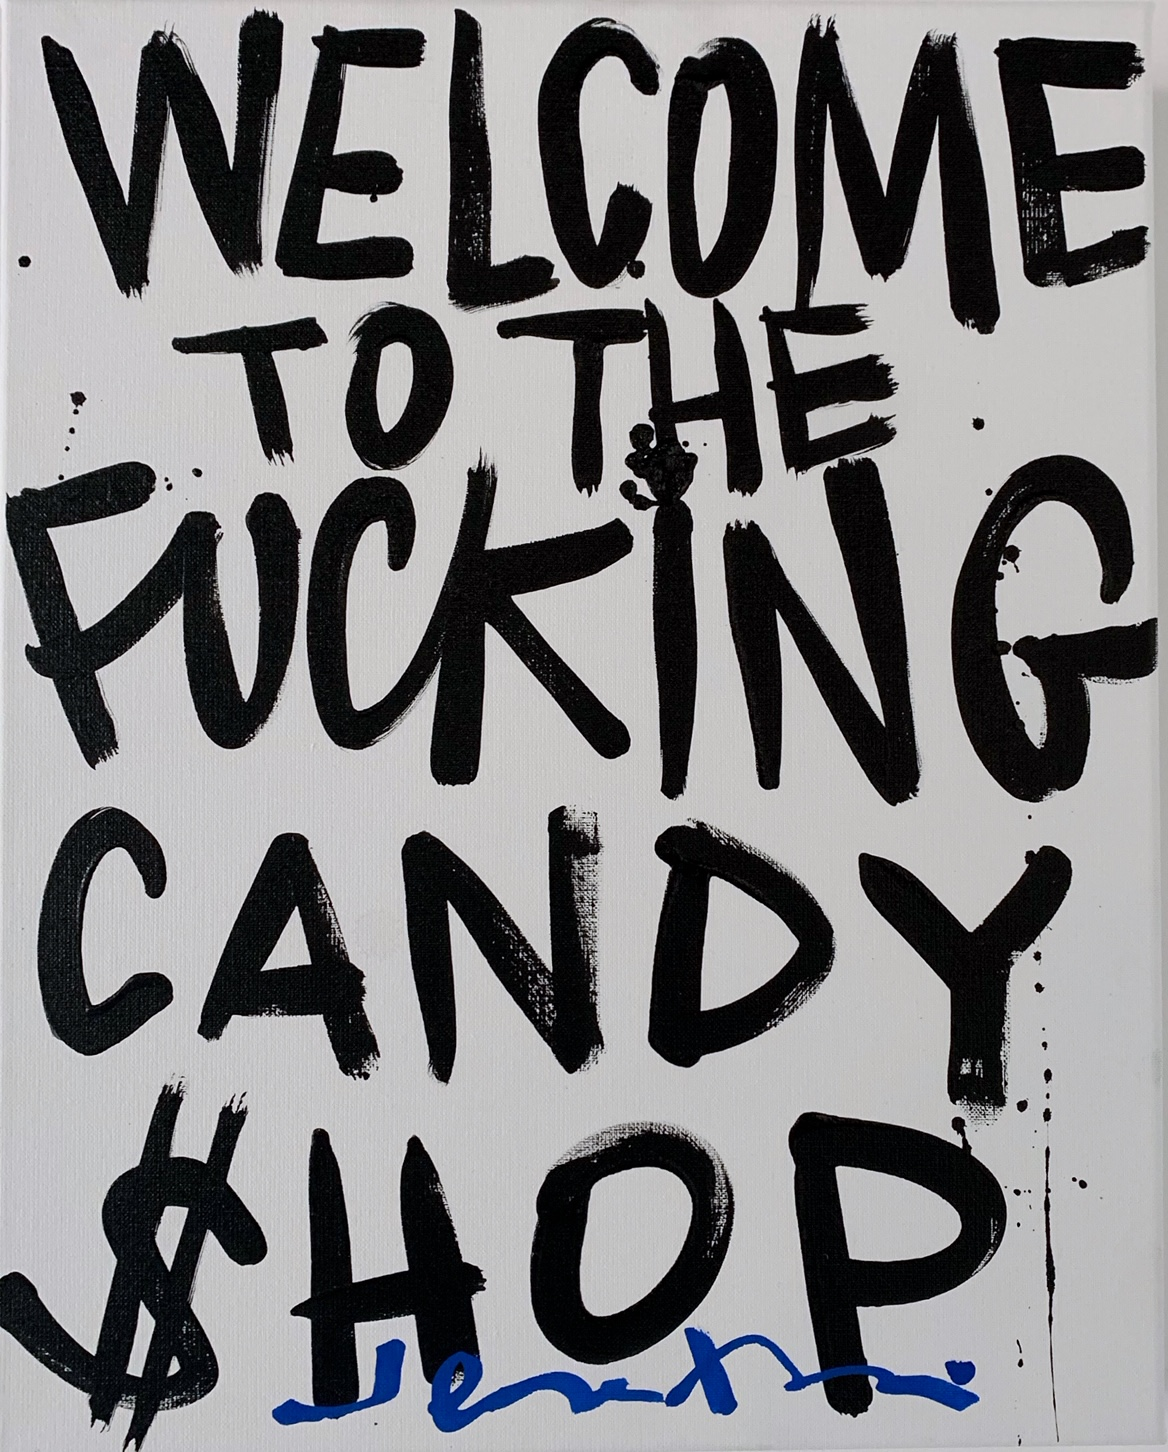 Welcome to the fucking candy $hop